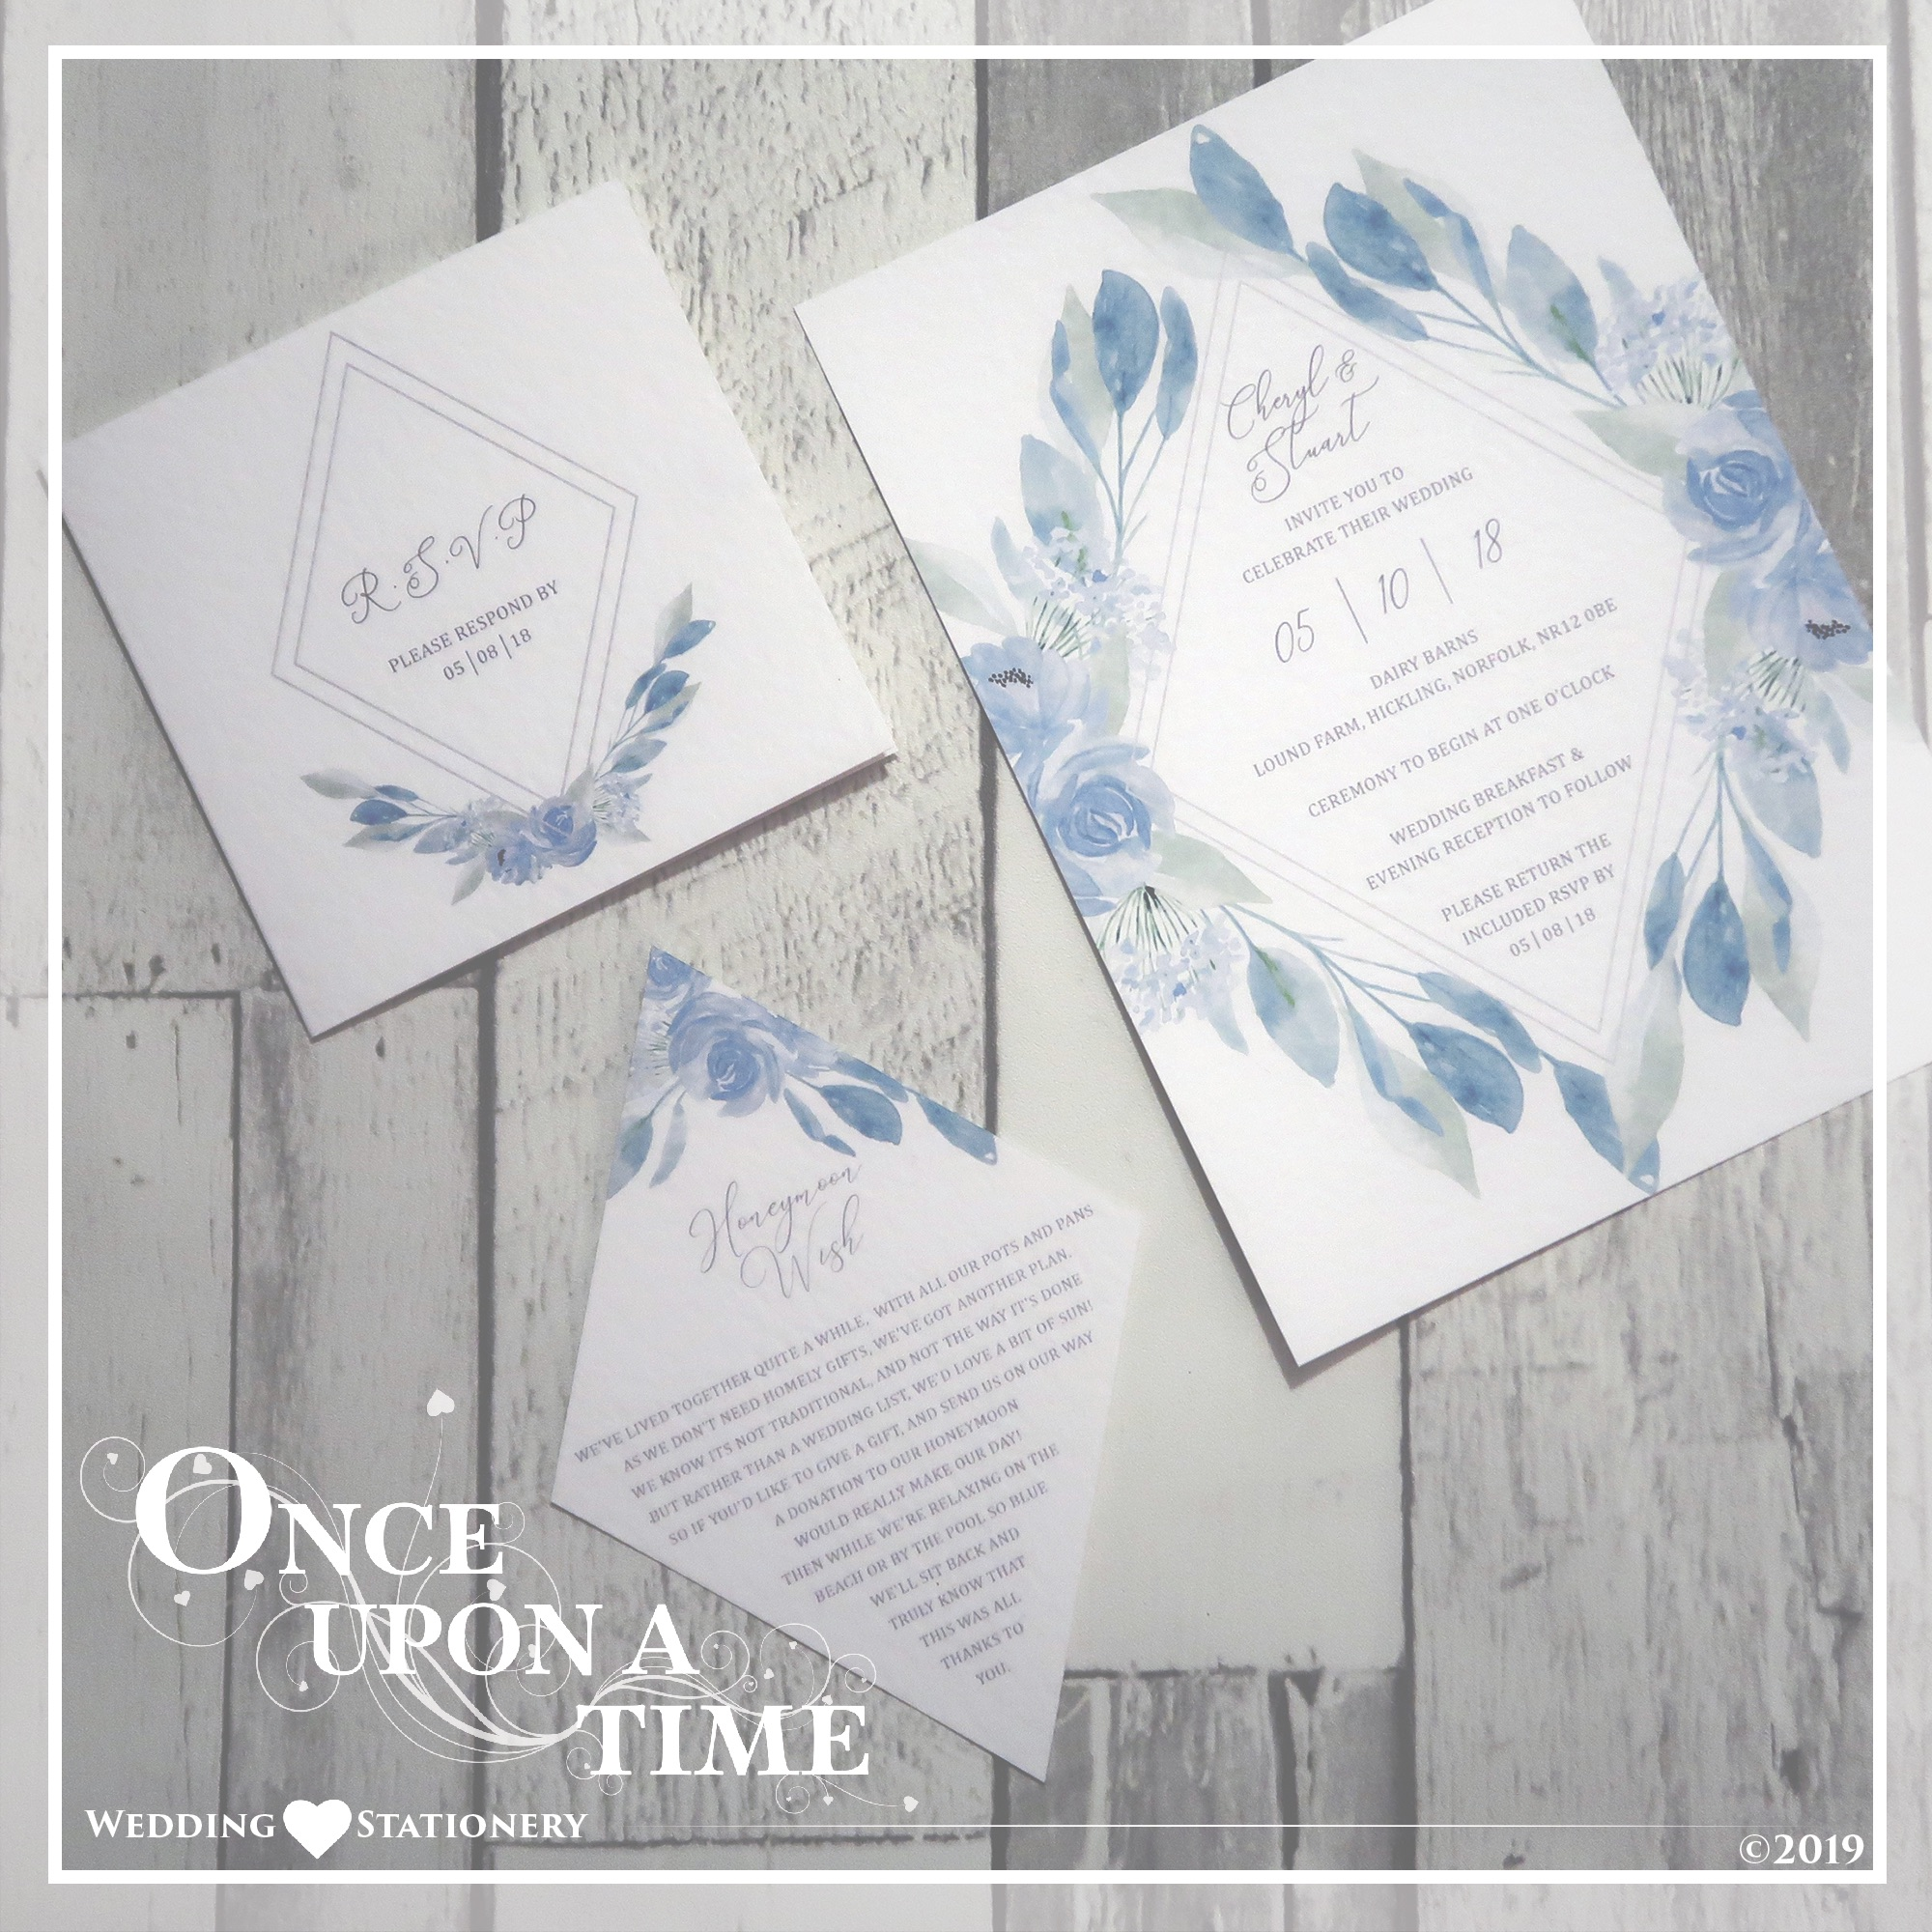 Flat Wedding Stationery Invitation  Set with RSVP Card & Gift Request Poem